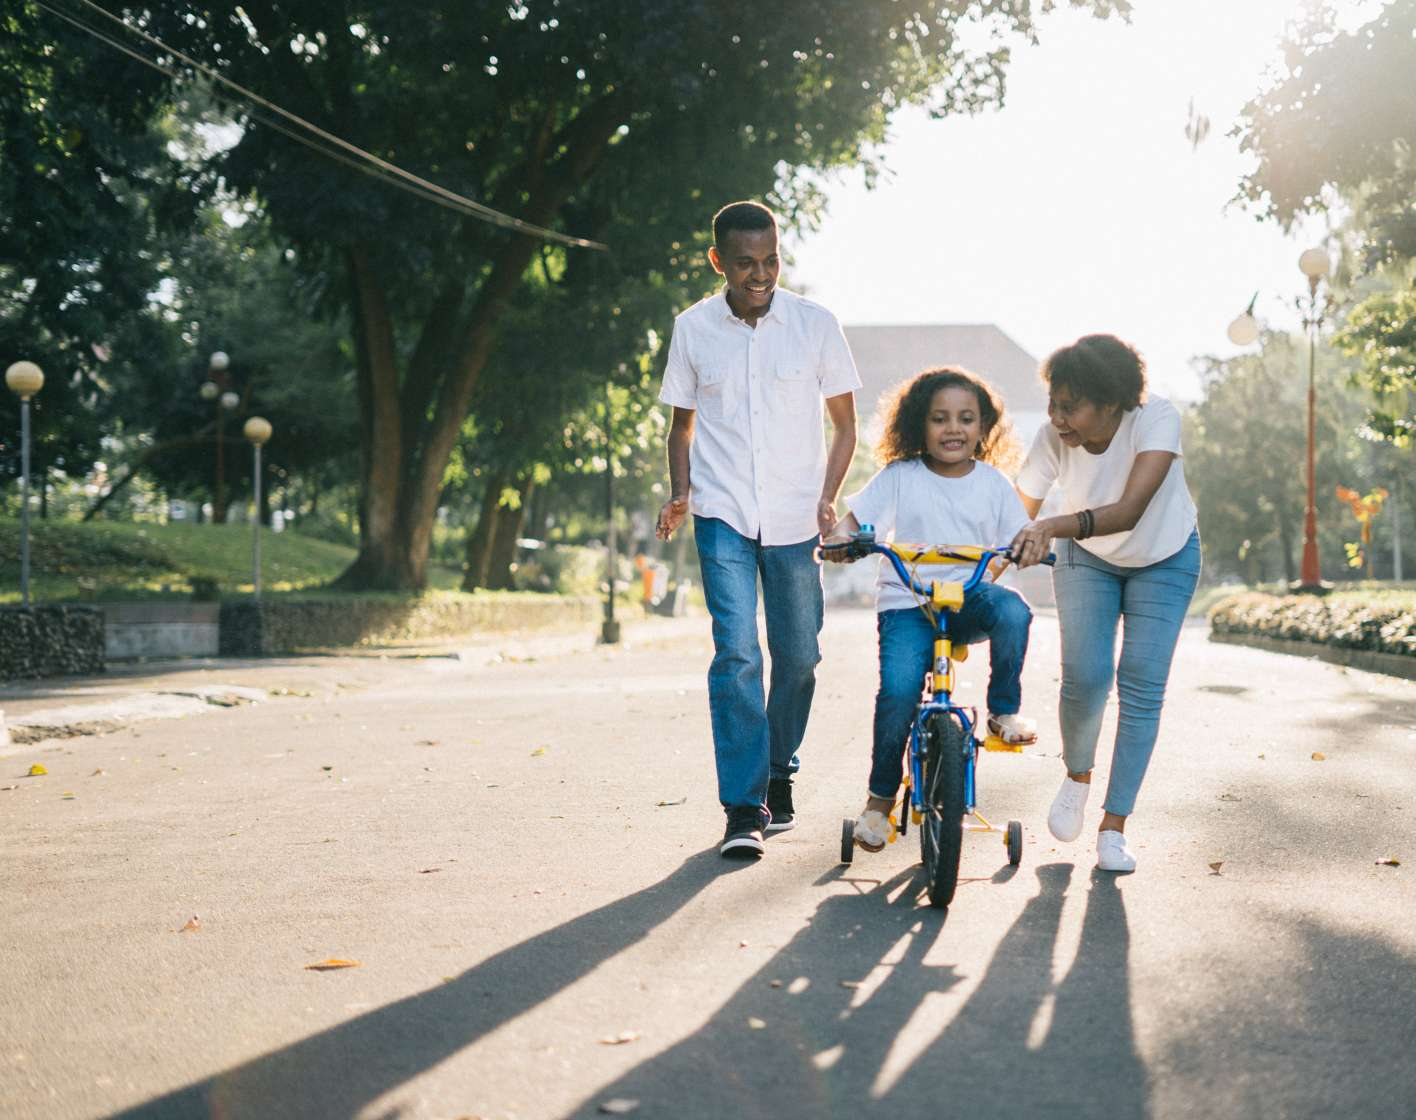 Two adults helping a child learn how to ride a bicycle